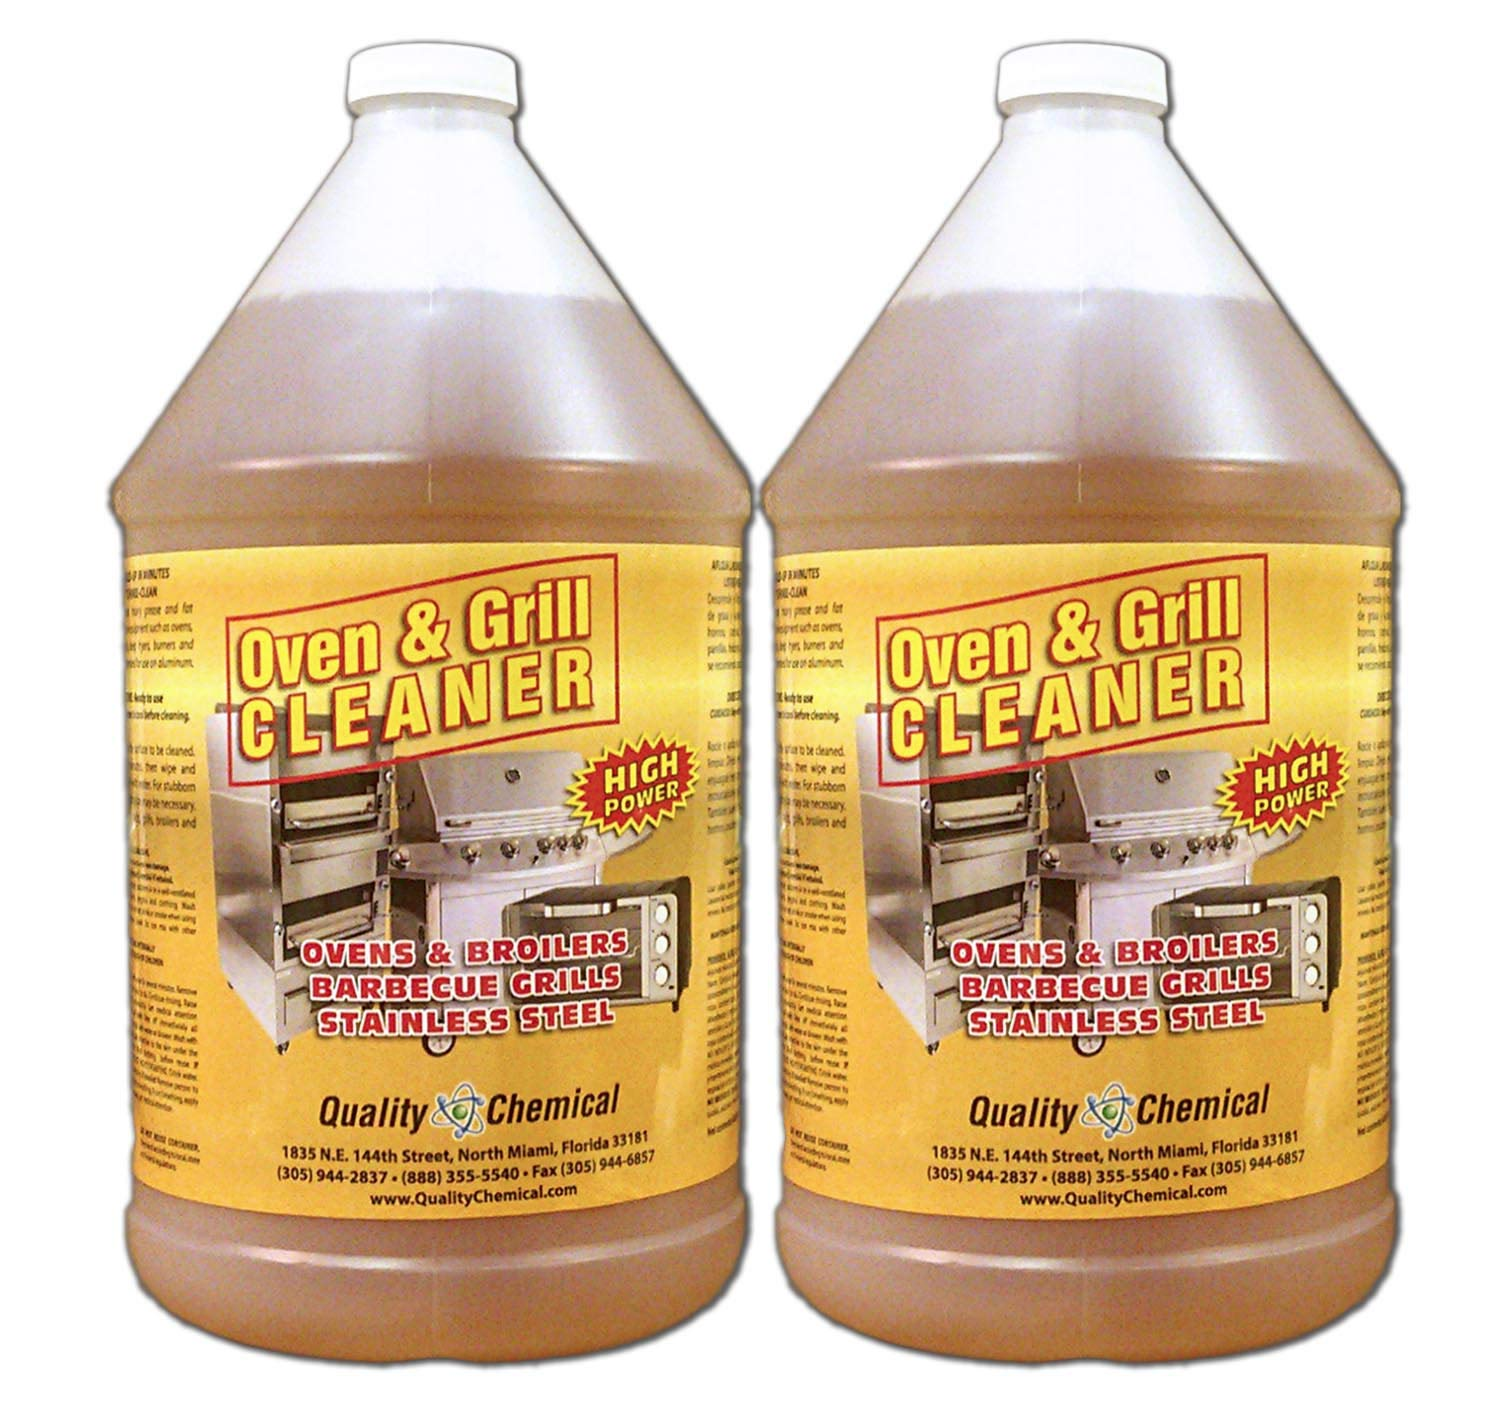 Oven & Grill Cleaner Heavy-Duty. High Power! Nothing Stronger.-2 gallon case by Quality Chemical